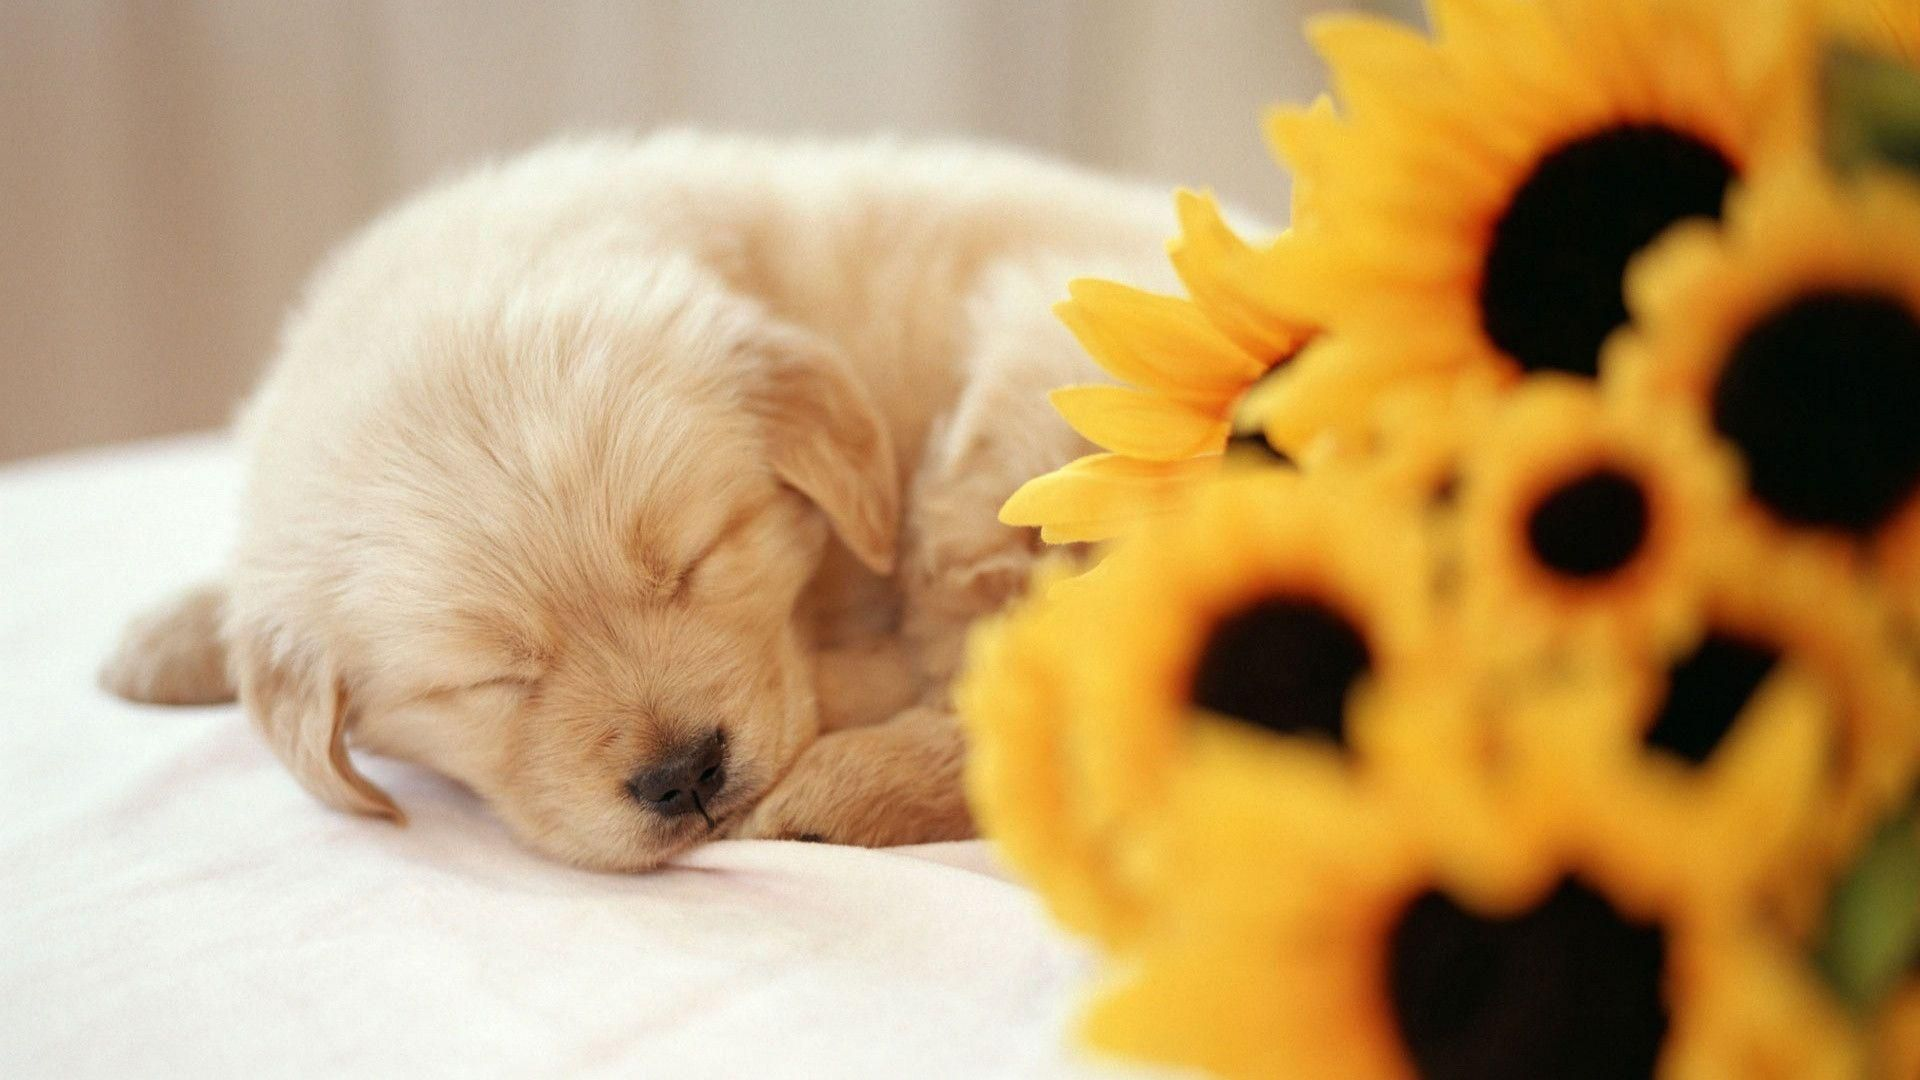 Puppies Free Hd Wallpapers And Backgrounds Download 54 Puppies Free Hd Wallpapers And Backgrounds Down Cute Puppy Wallpaper Puppy Backgrounds Puppy Wallpaper